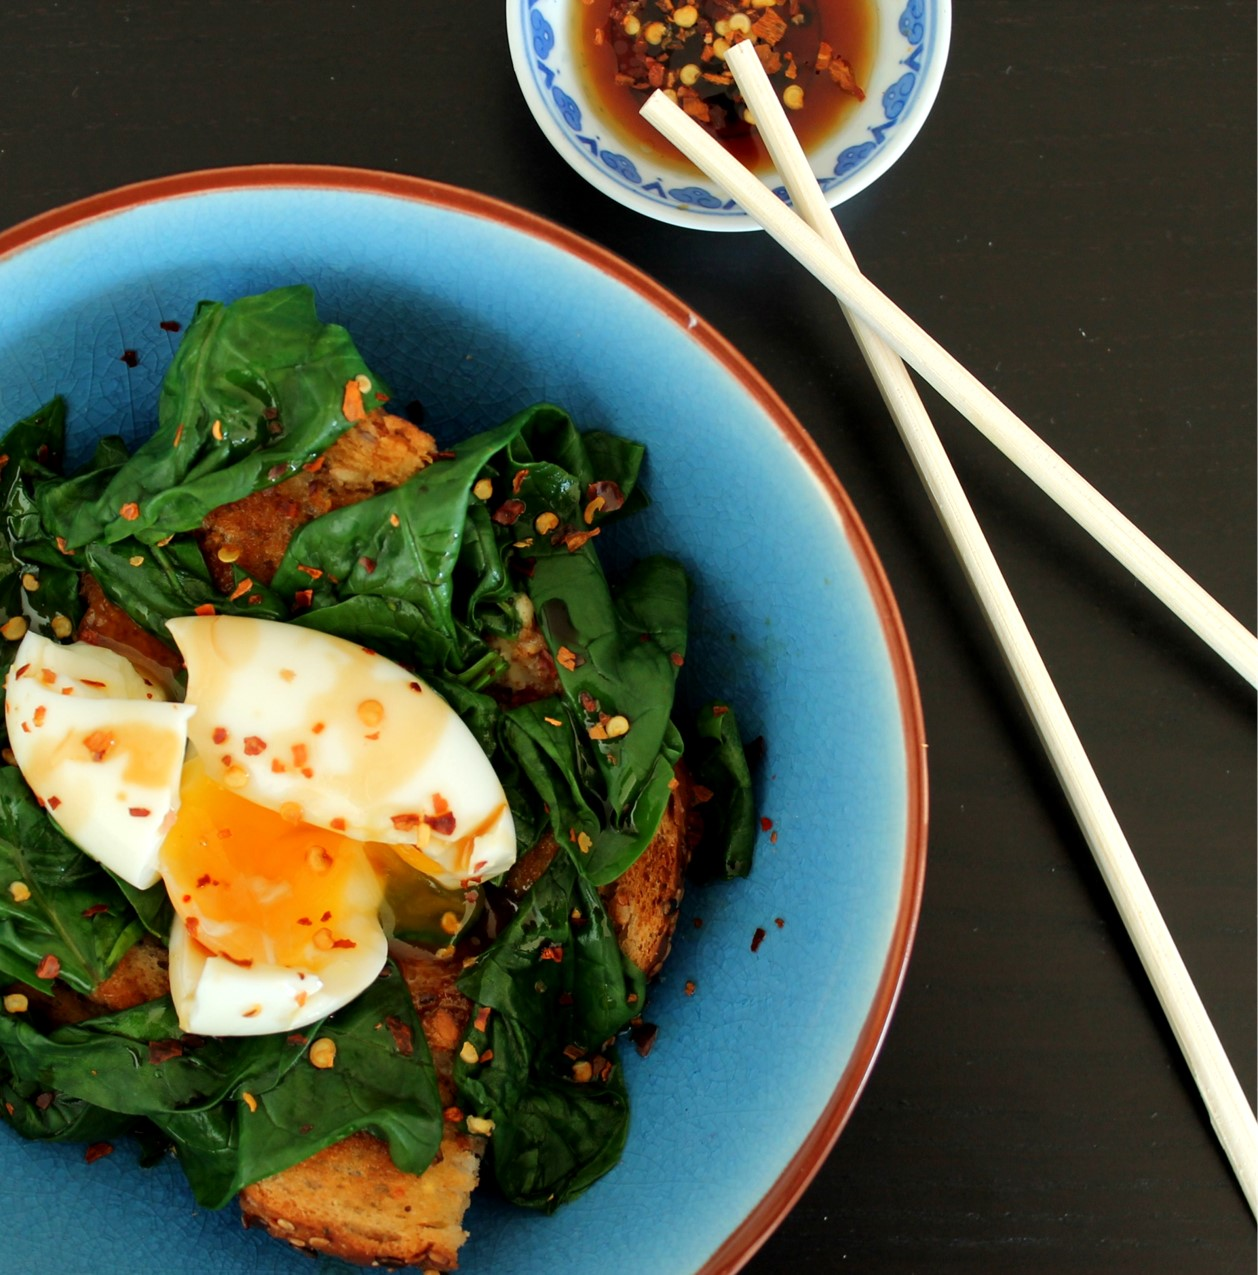 Nutrient rich and full of big flavours - Breakfast, Brunch, Lunch